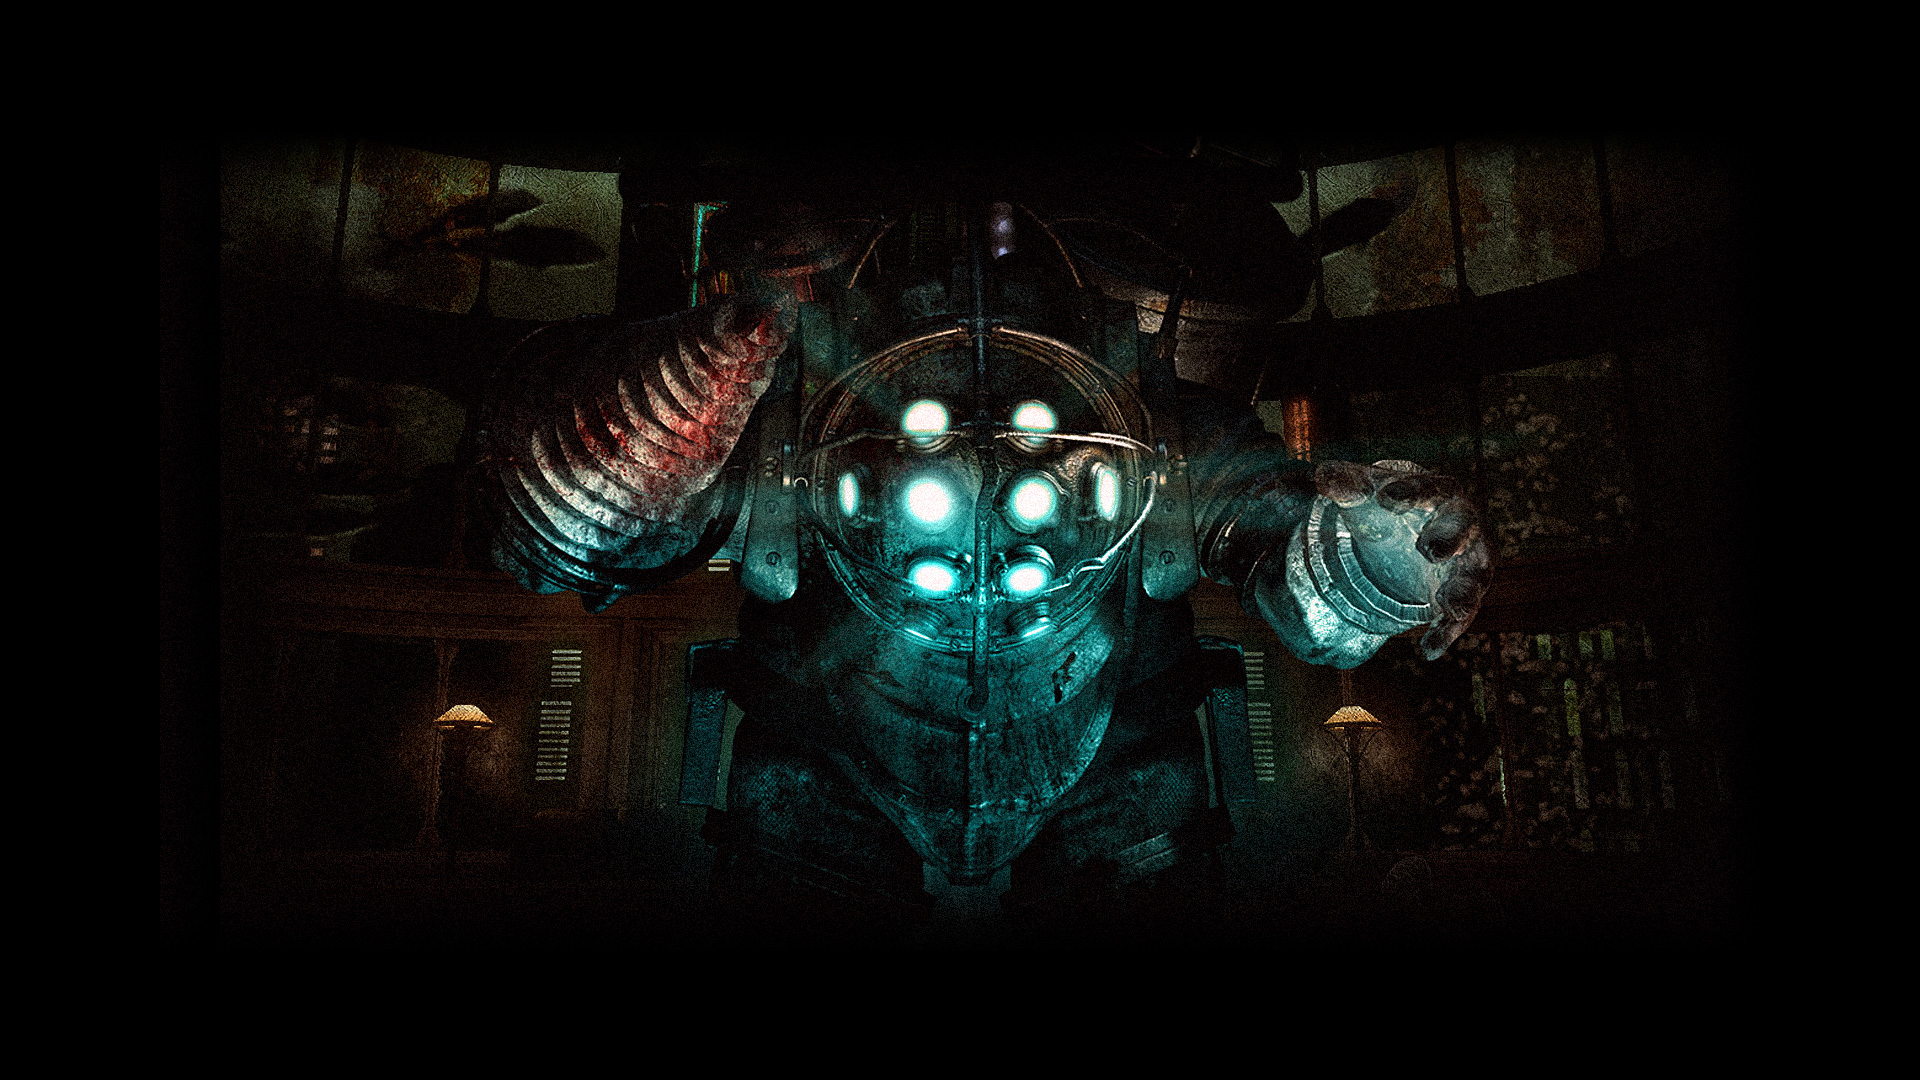 This is a Bioshock Big Daddy wallpaper. This Bioshock Big Daddy background